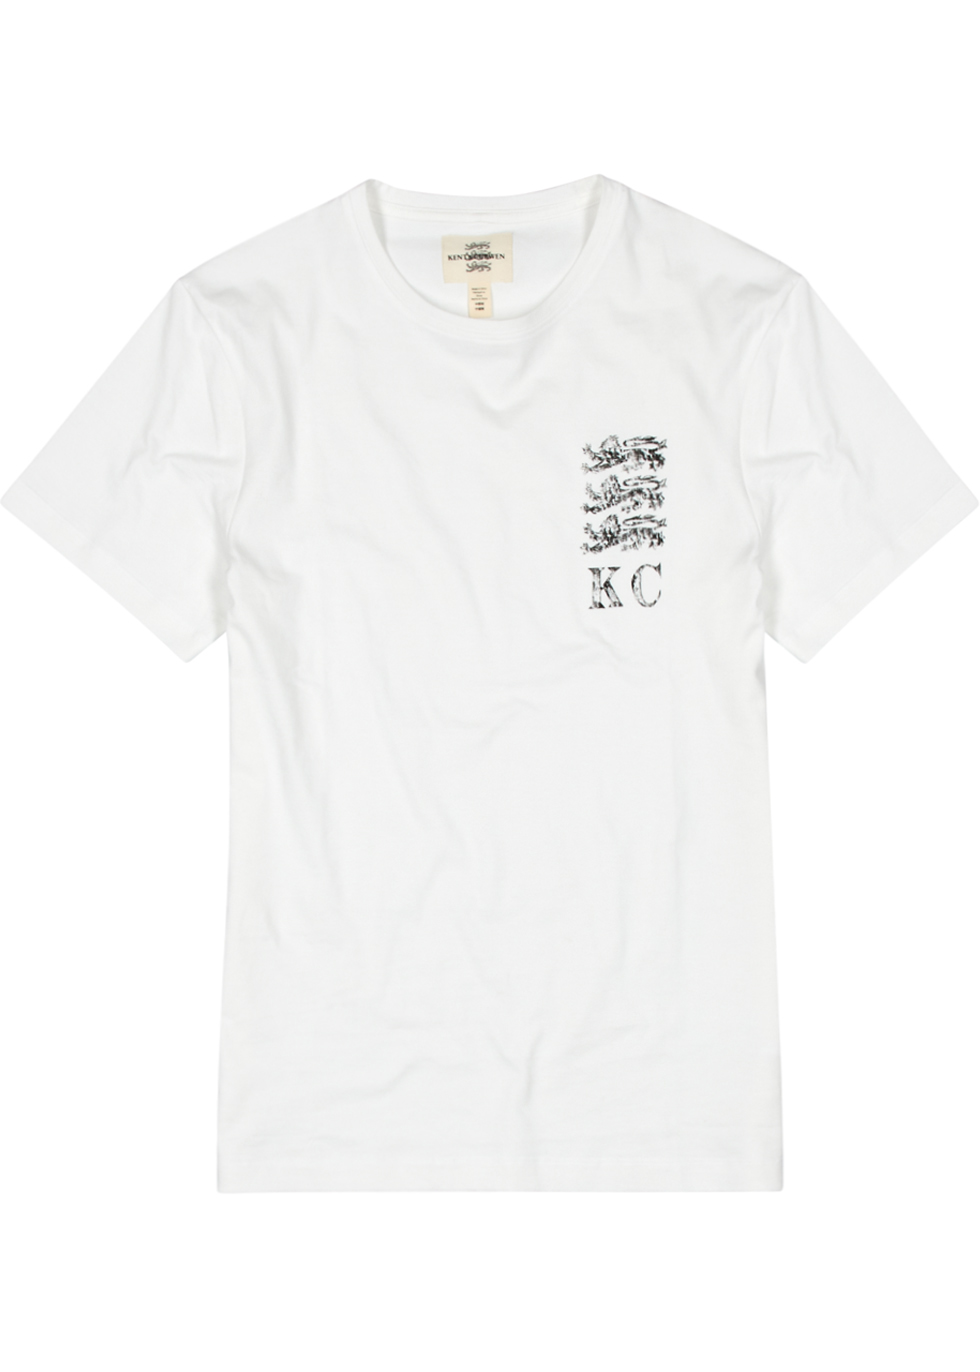 KENT & CURWEN WHITE LOGO-PRINT COTTON T-SHIRT